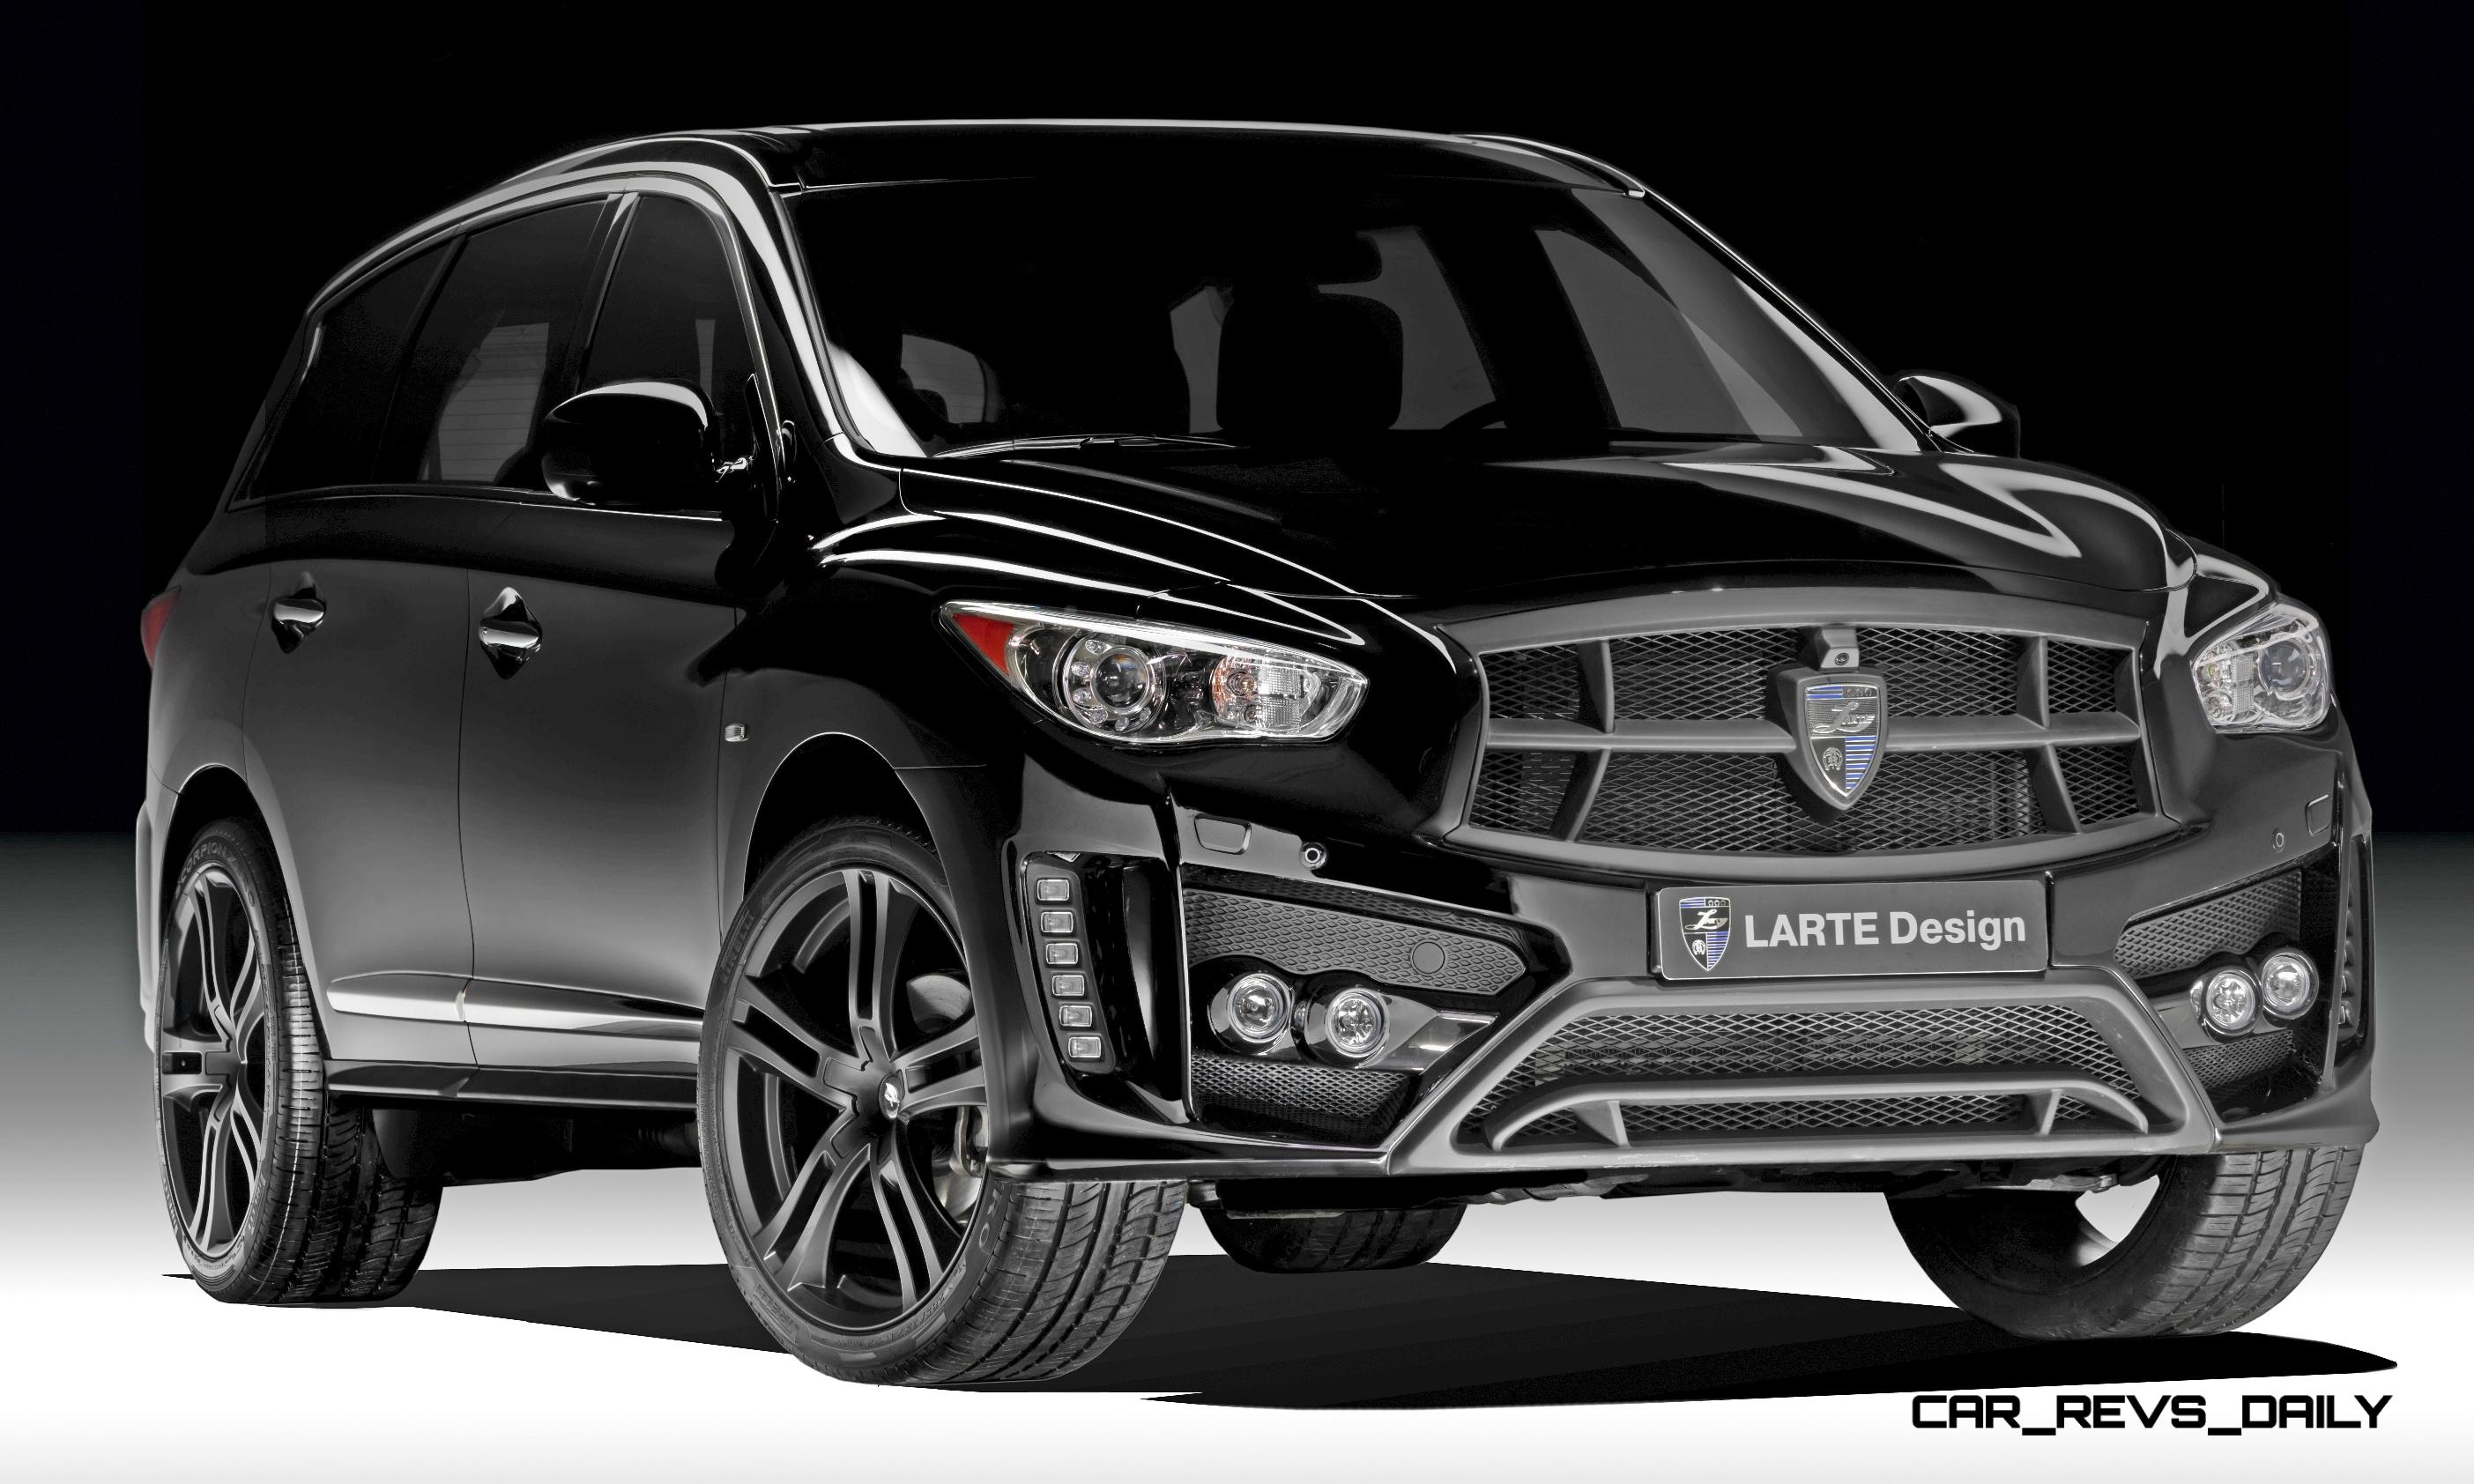 comprehensively infinity family crossover driver a fit wide sized premium utility versatile enhanced rhythms suv built its automotive mid luxury range has fathers infiniti for designed introducing